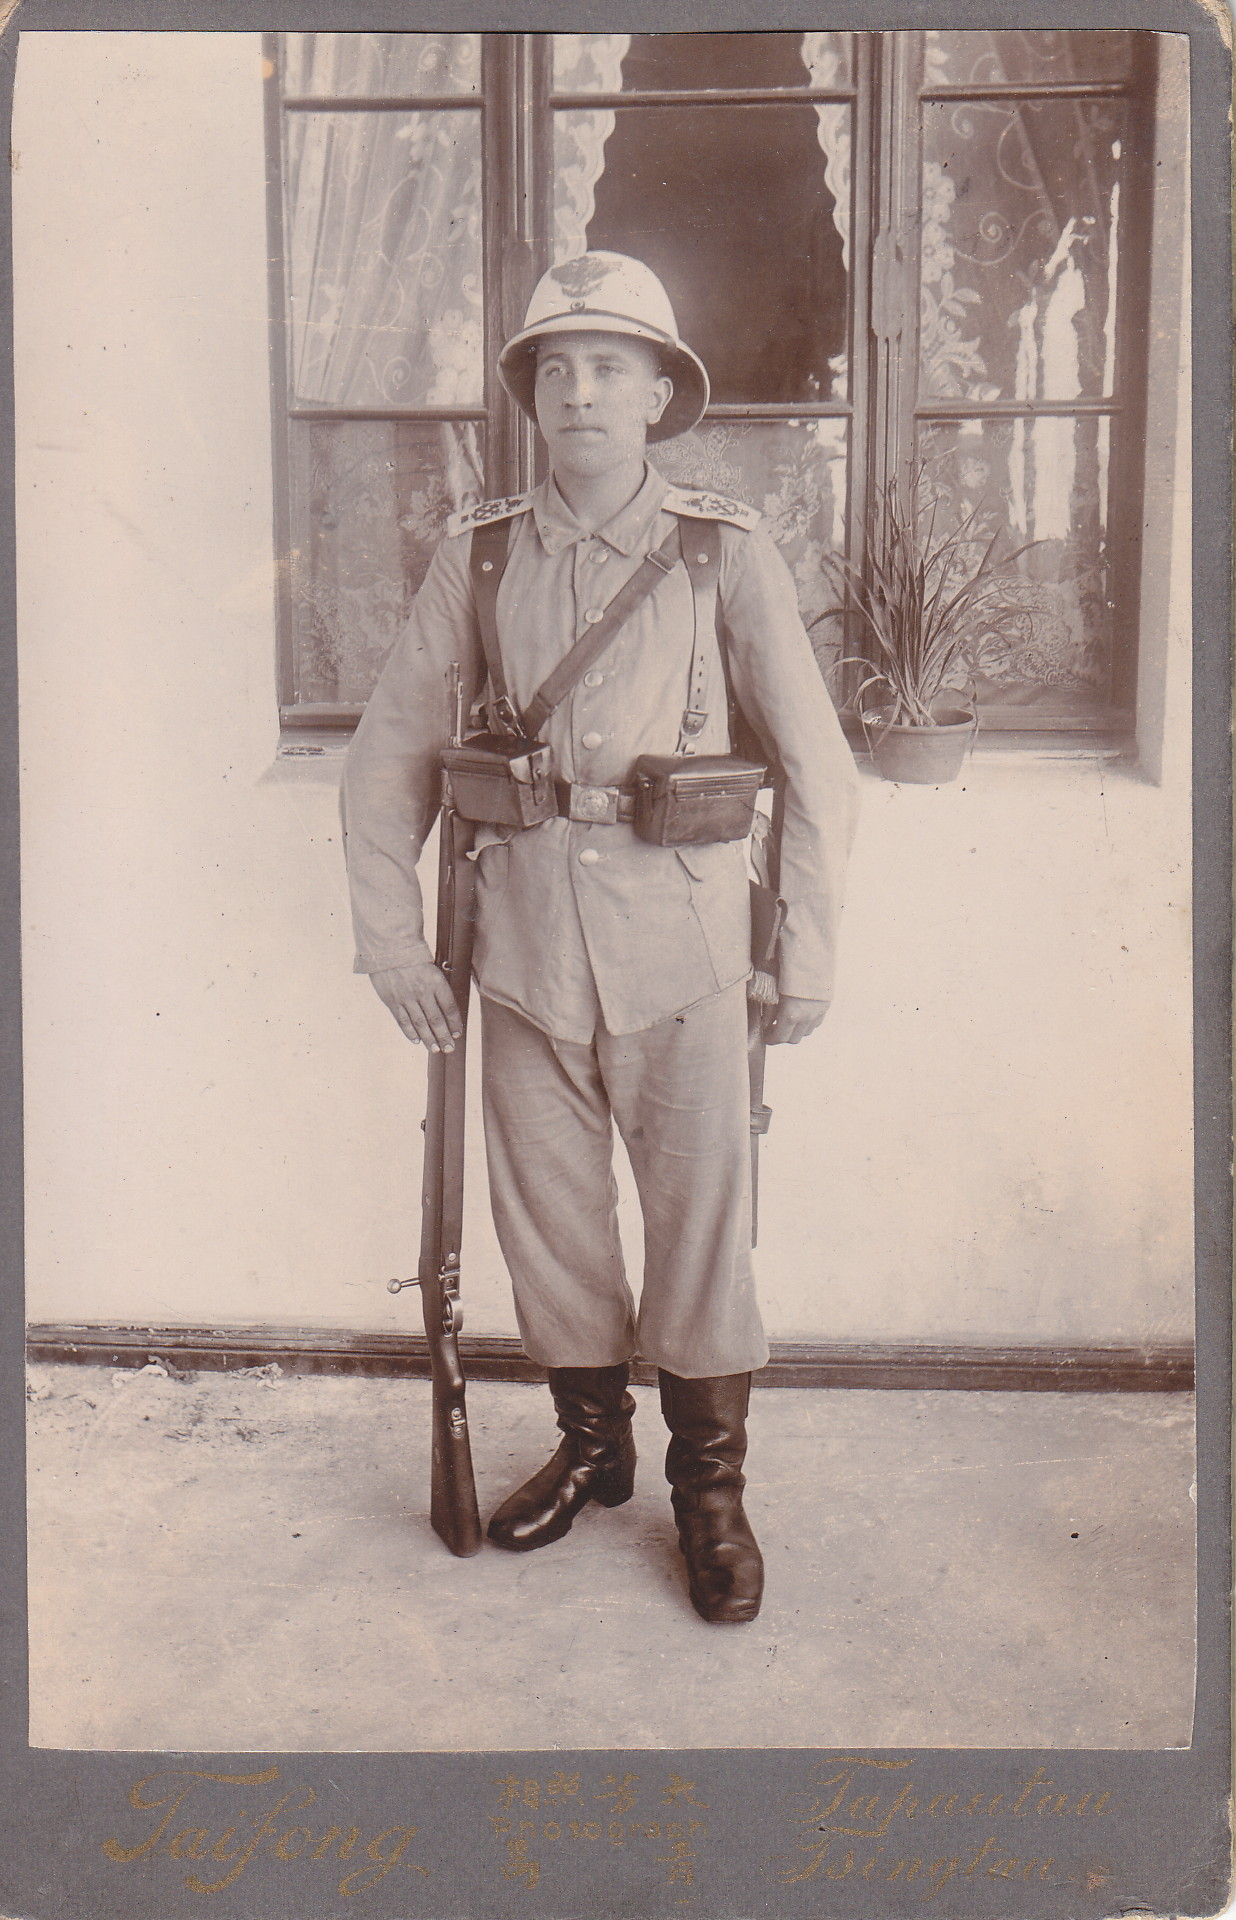 Soldat in Uniform